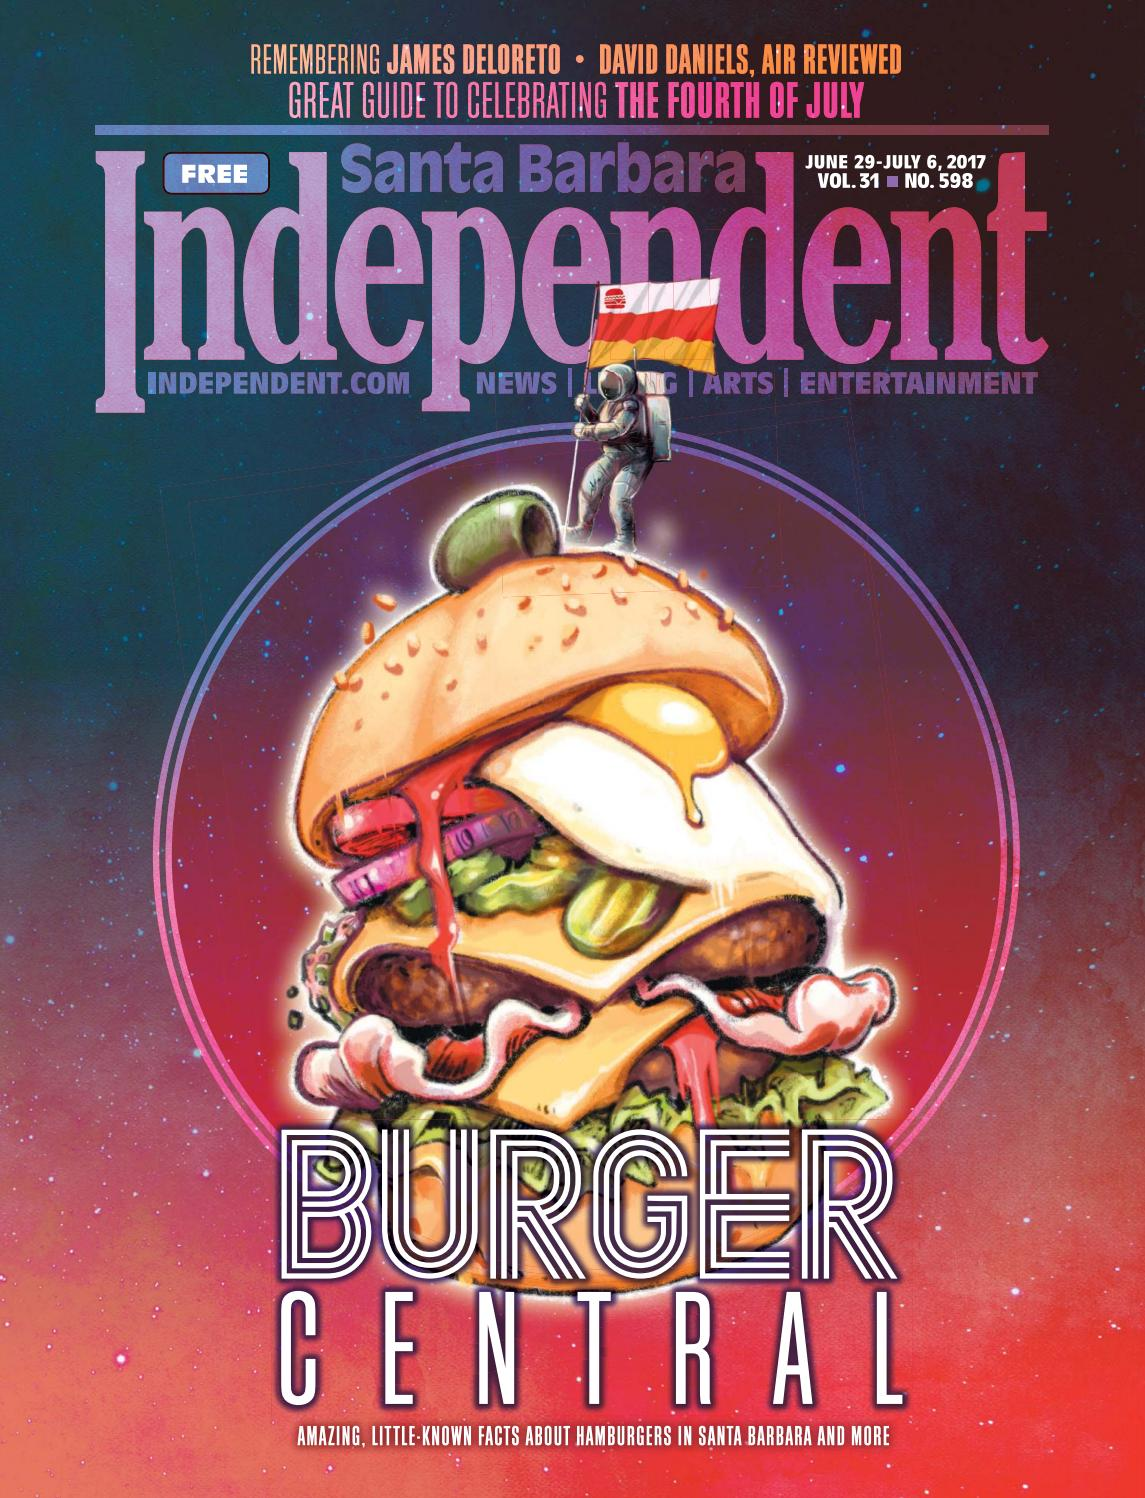 Santa Barbara Independent, 06/29/17 by SB Independent - issuu